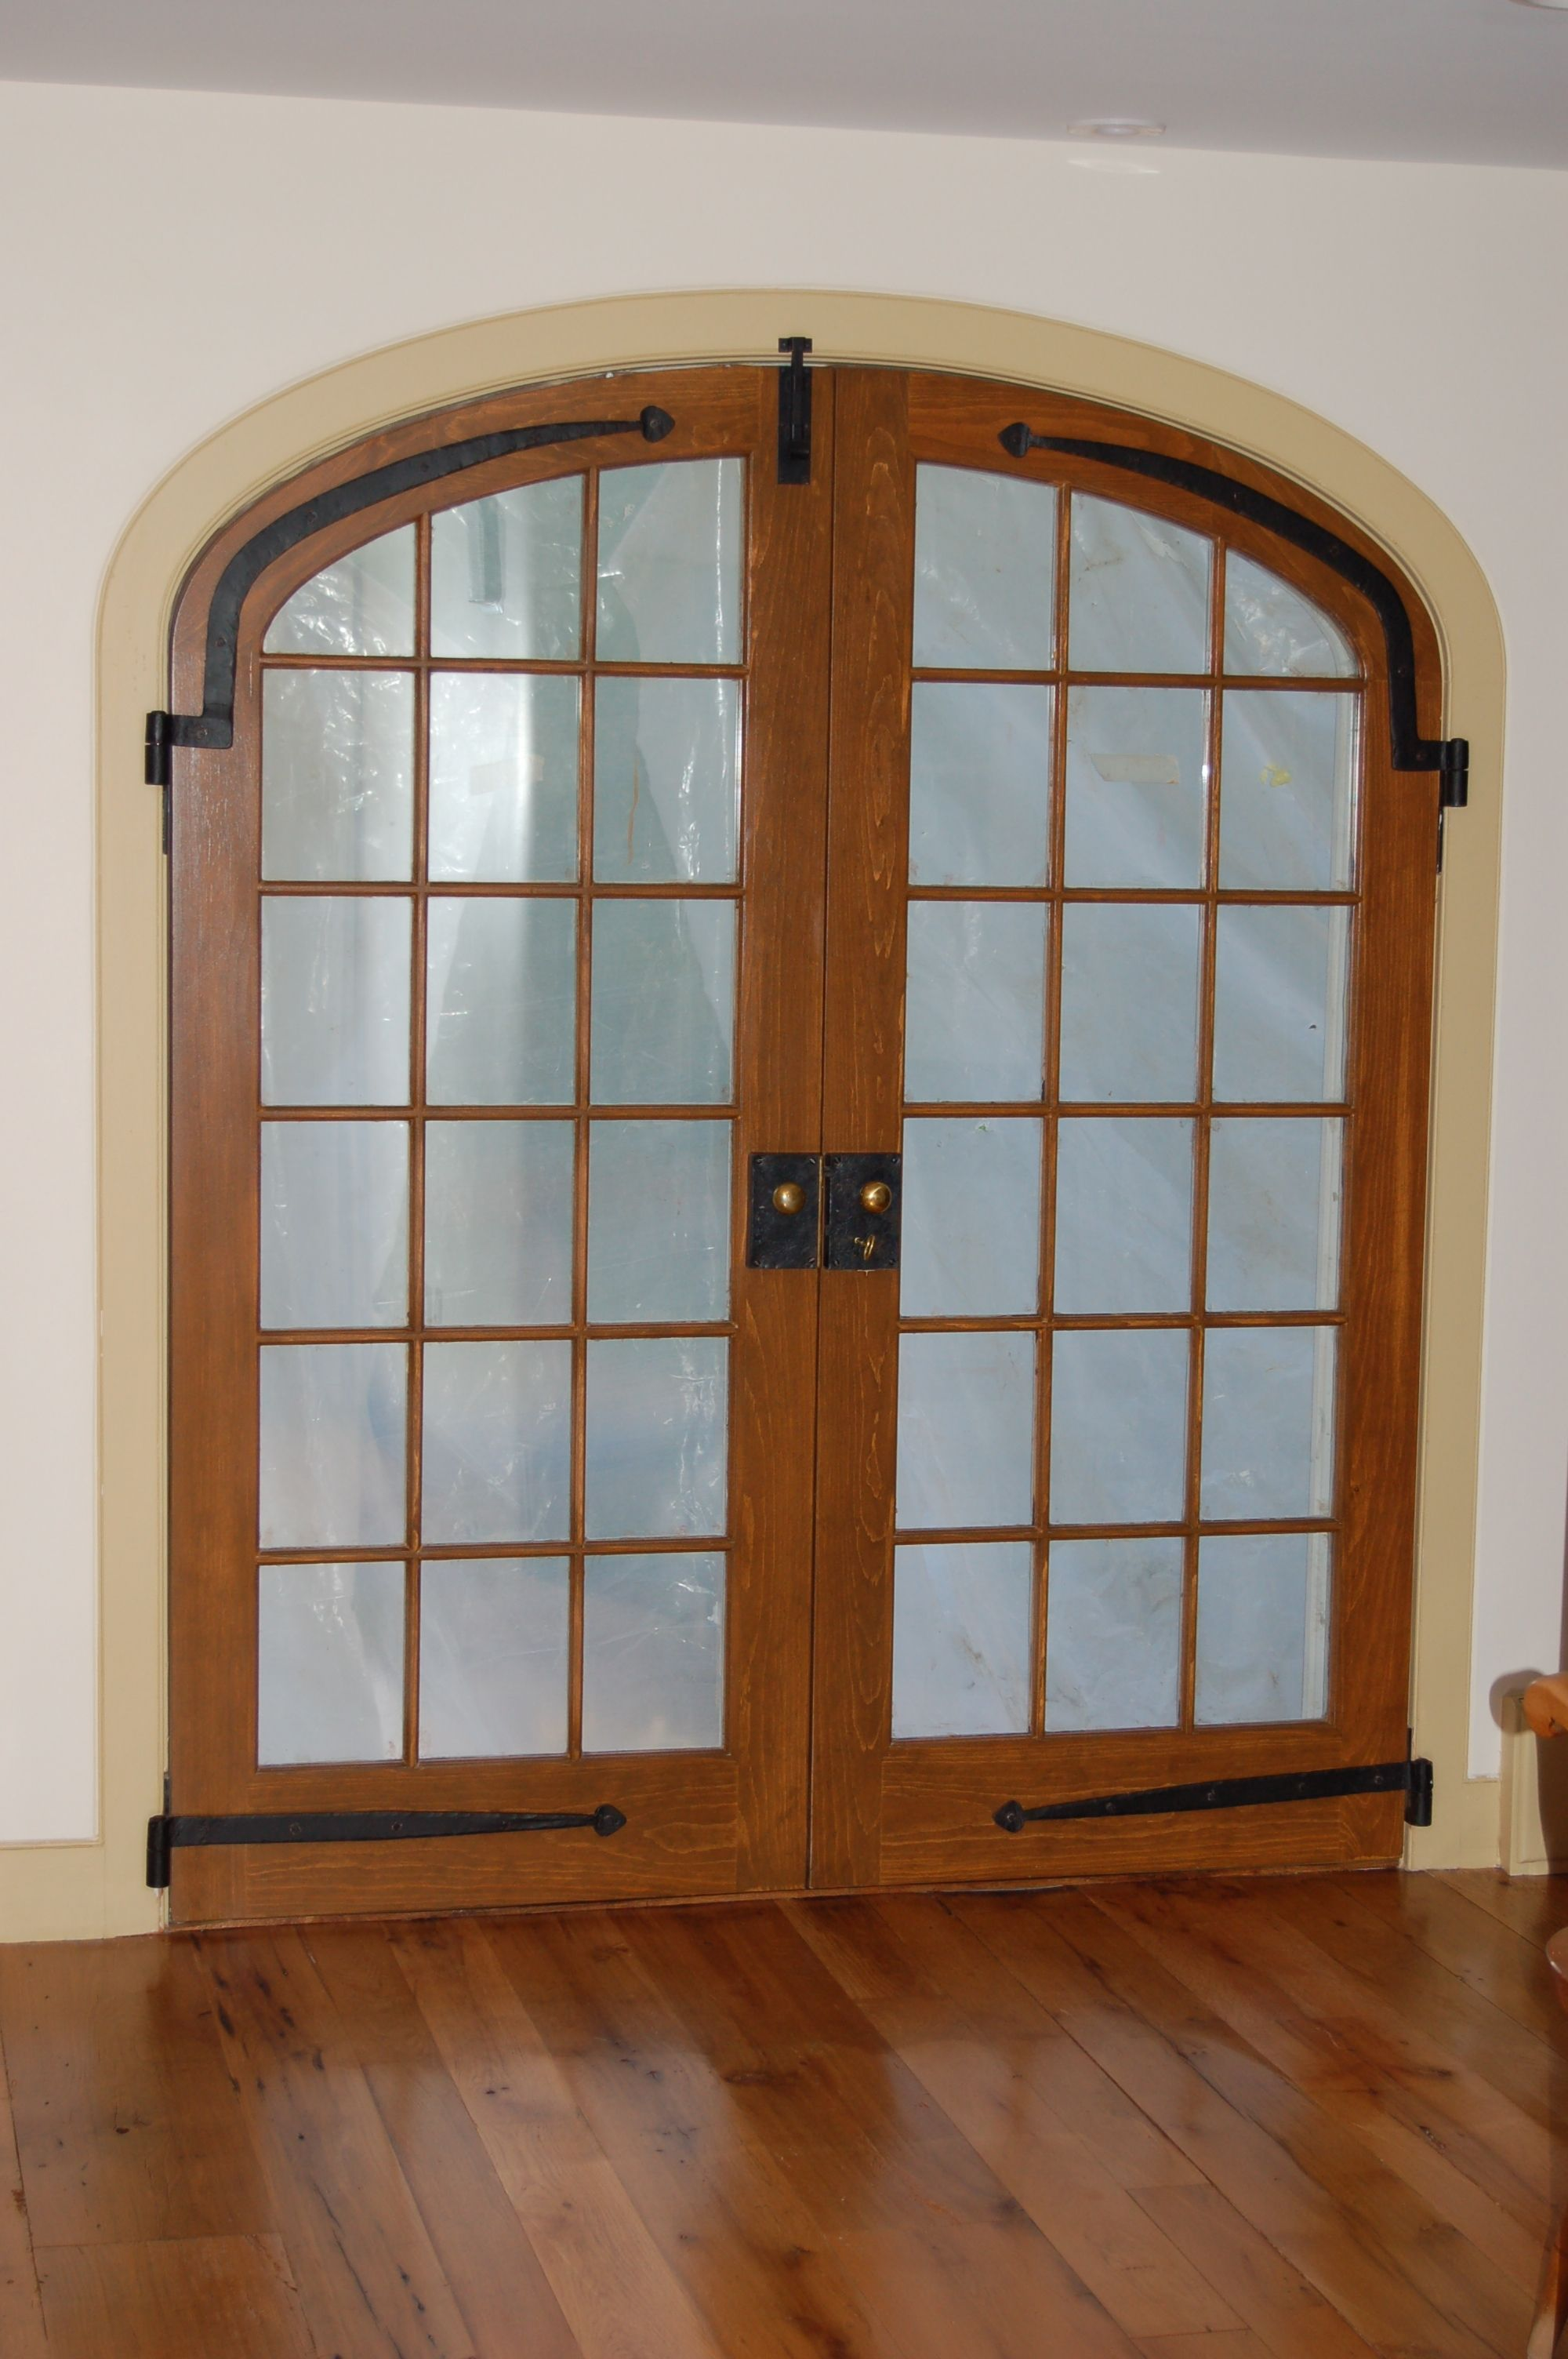 Elliptical Double Arch Top Exterior Door Unit Double Pane Insulated Glass Simulated Mullions Wood French Doors French Doors Exterior Custom French Doors